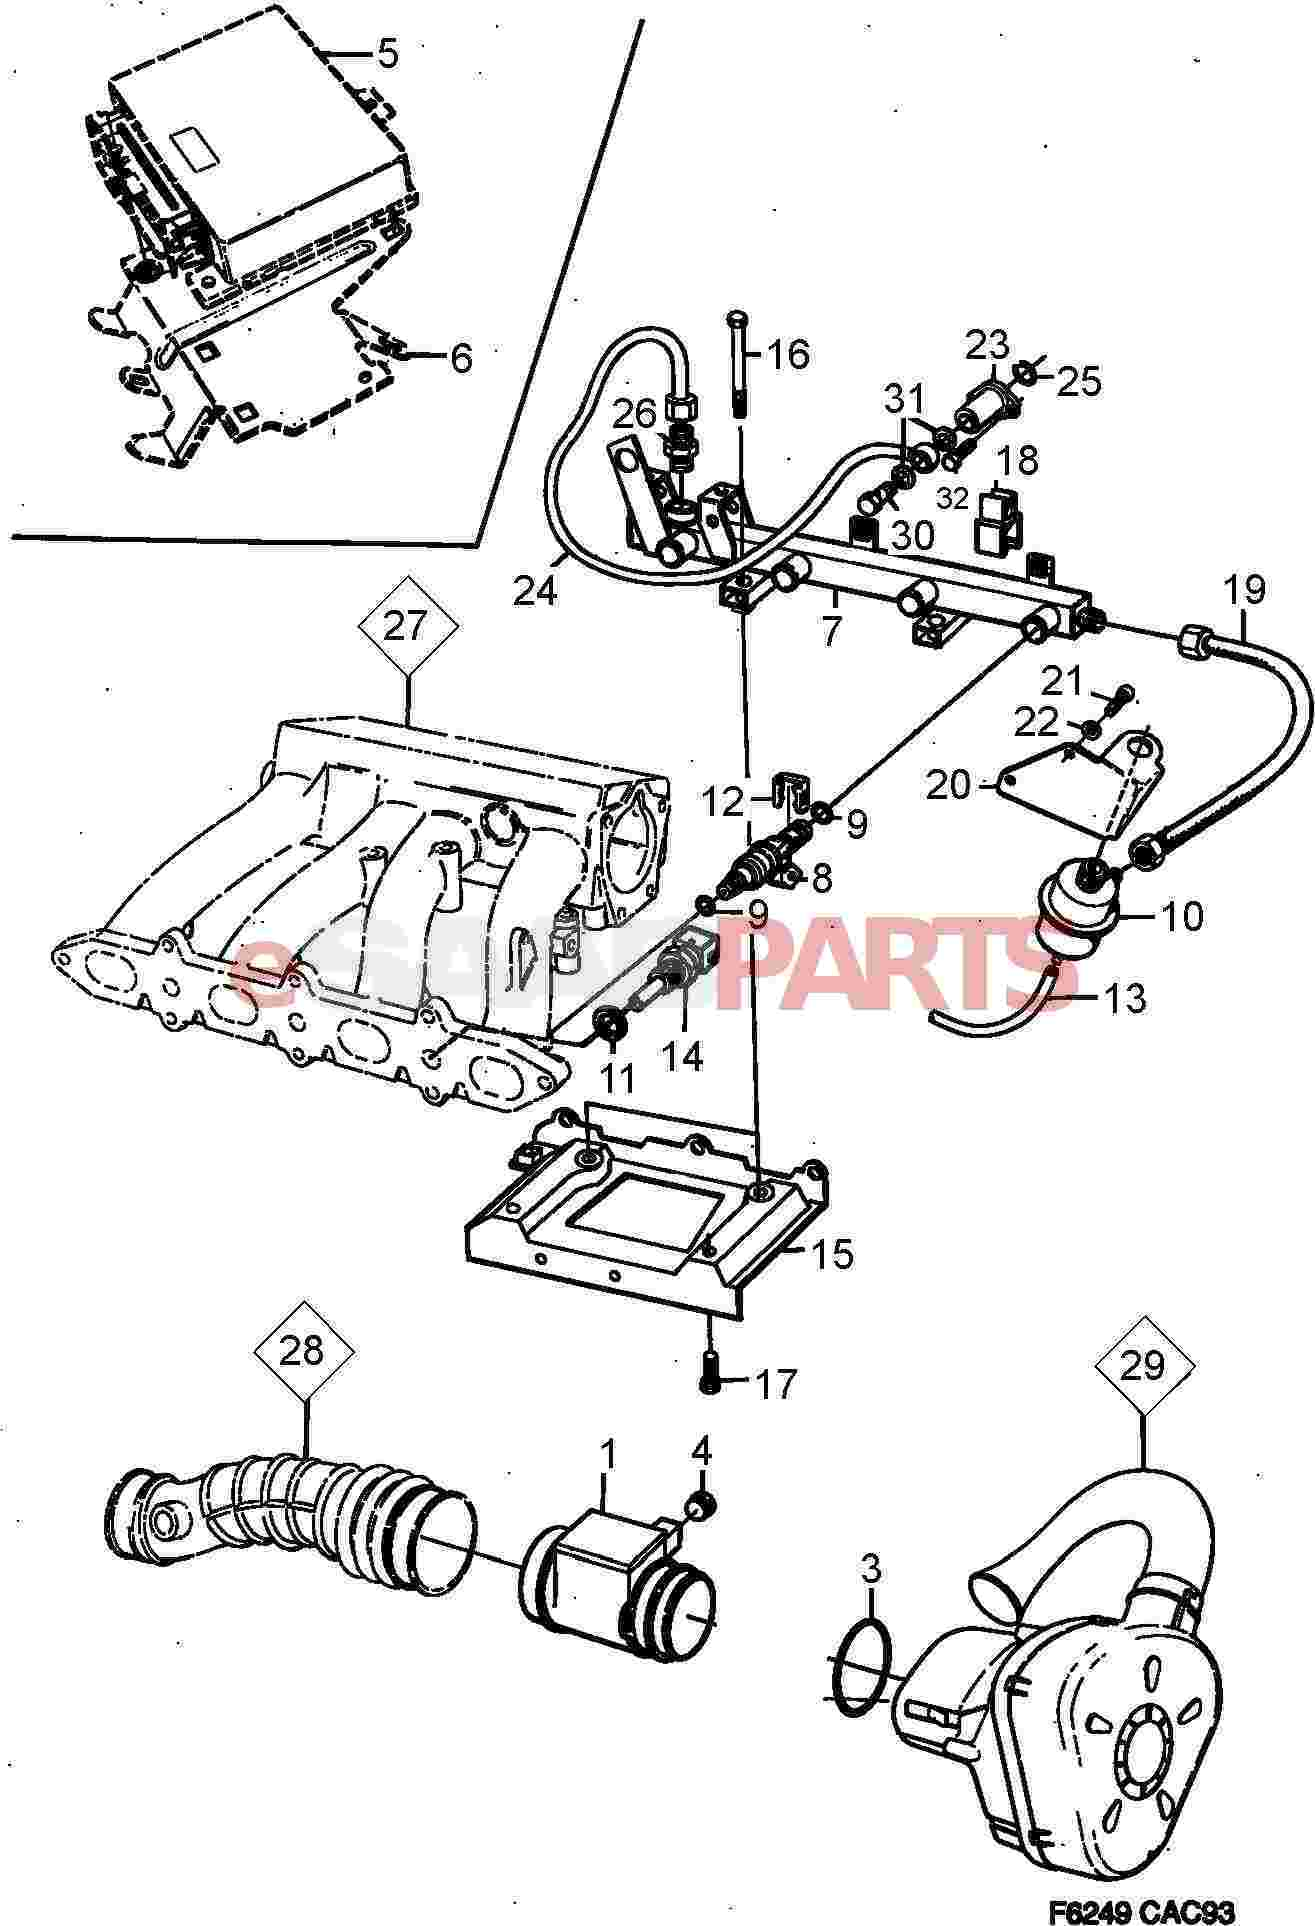 parts diagram dodge ram forum dodge truck forums html